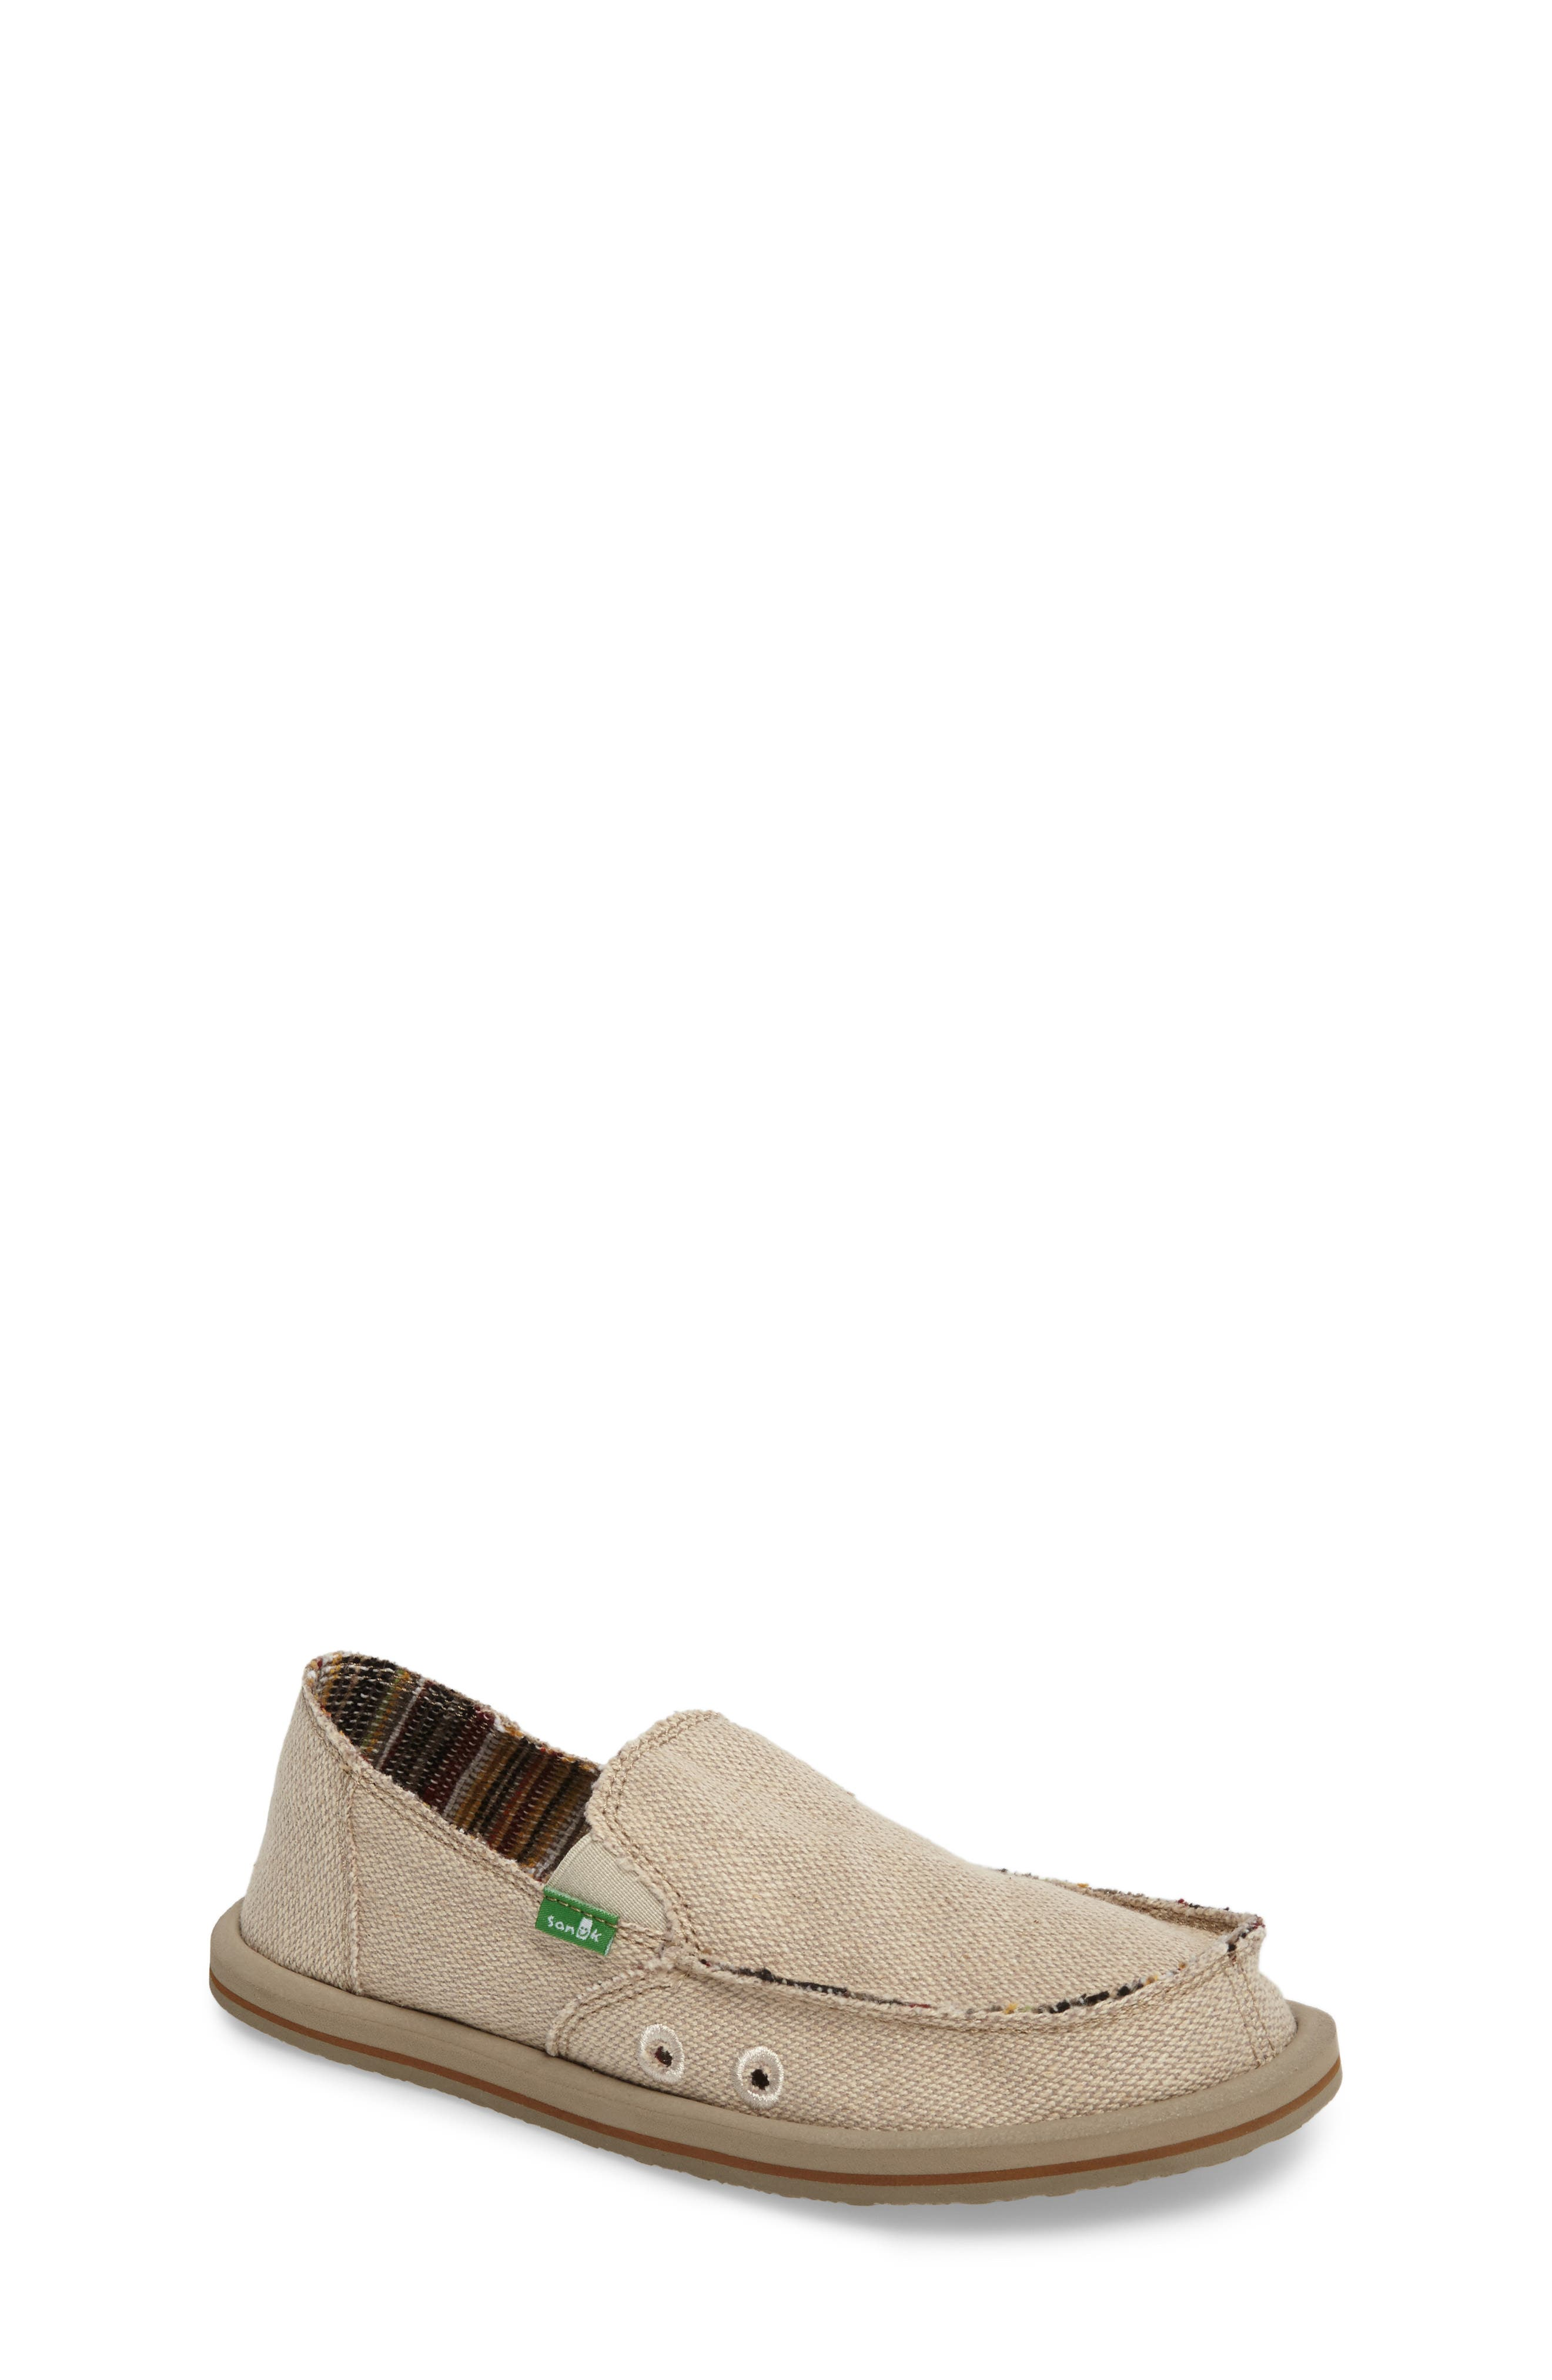 Lil Donna Slip-On,                             Main thumbnail 1, color,                             250